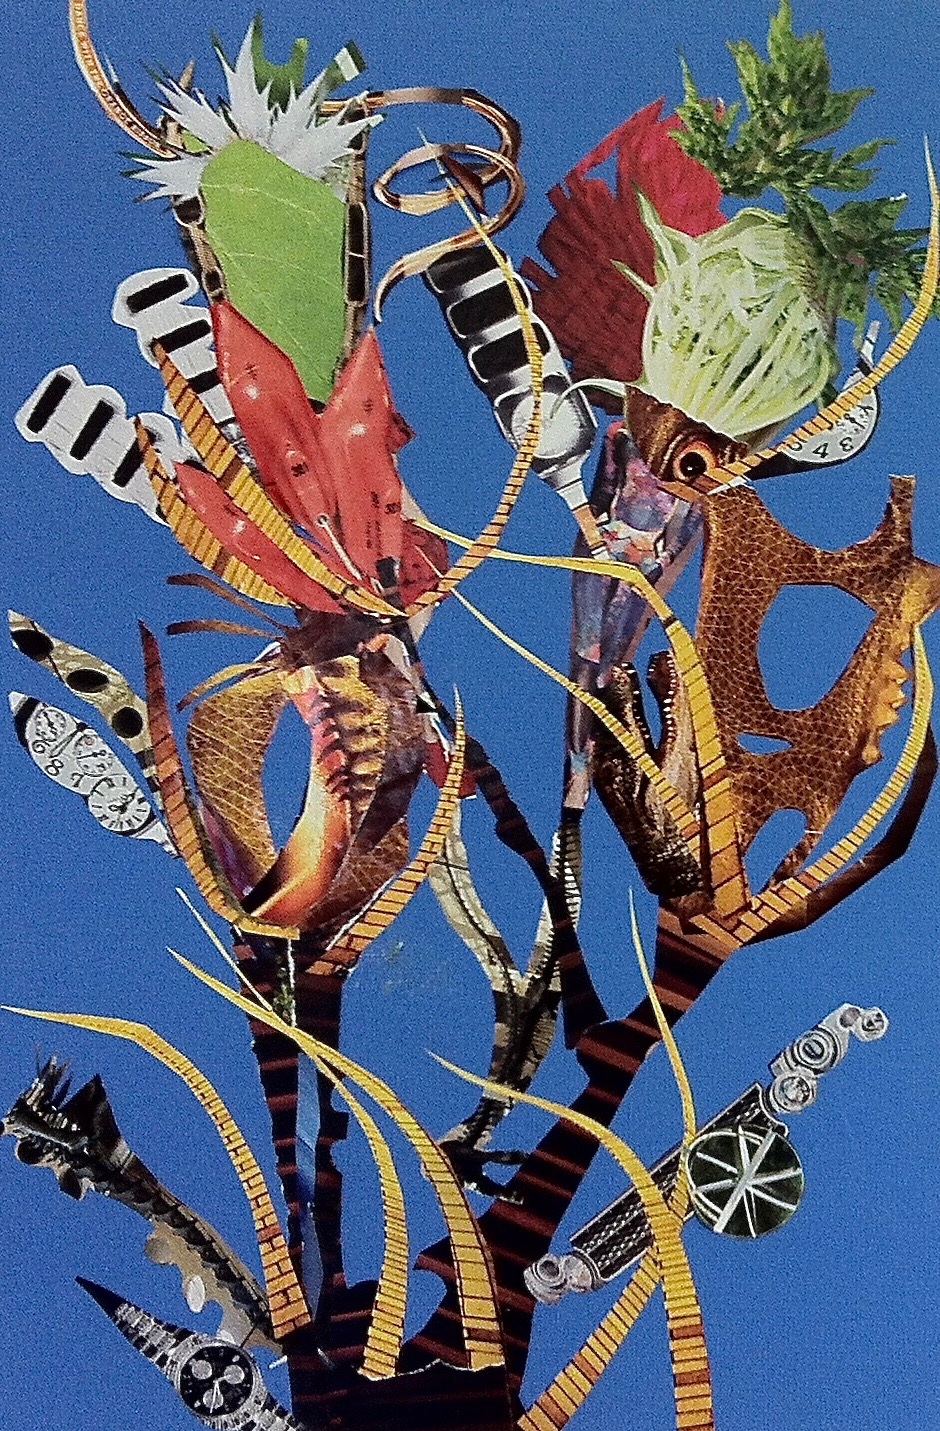 Fantastical Botanical Collage - Jill Ehlert